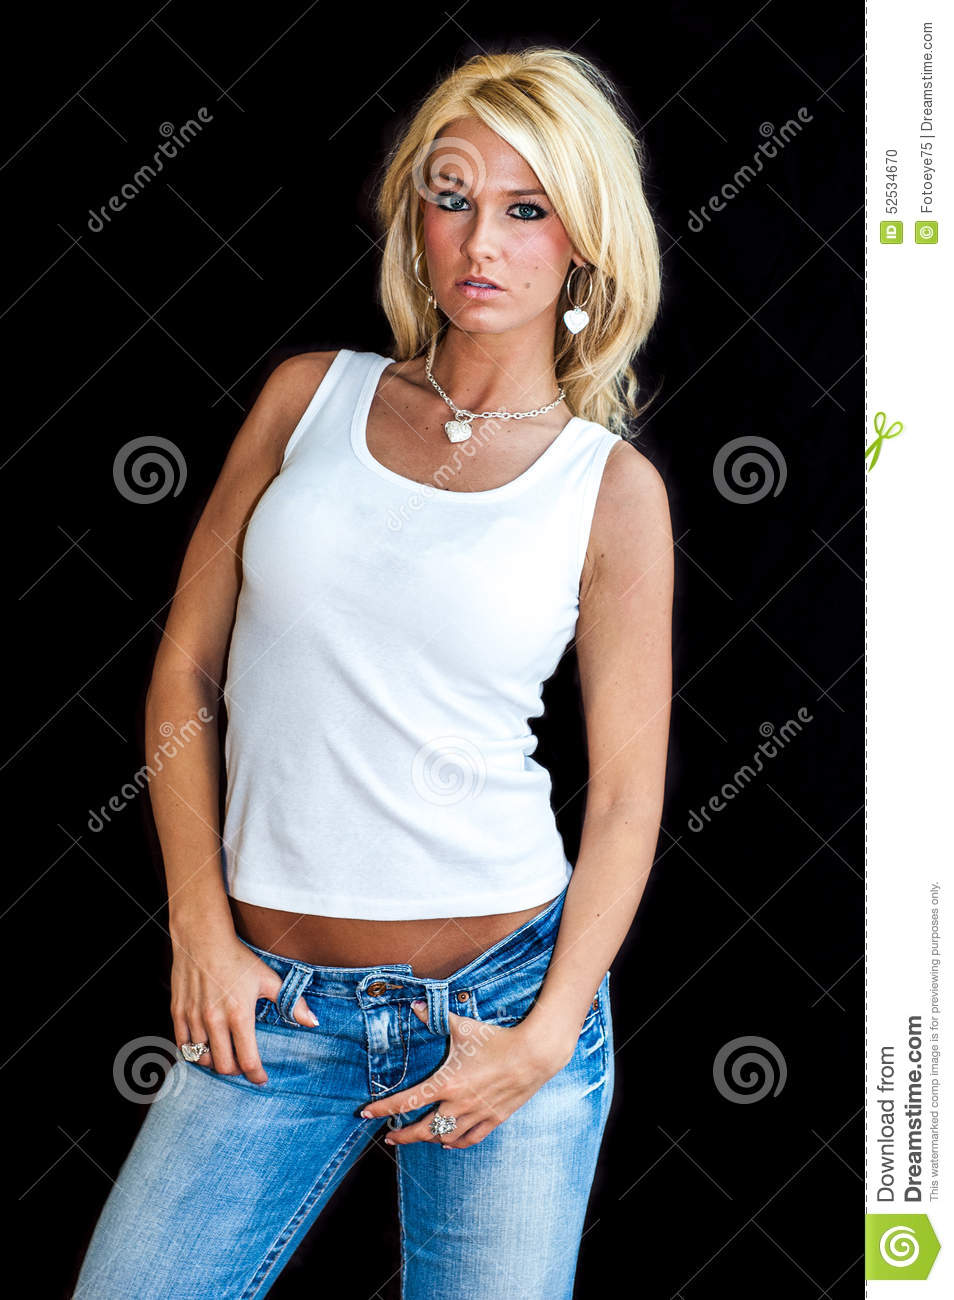 Girl Blonde Fashion Model Stock Photo Image Of Clothes